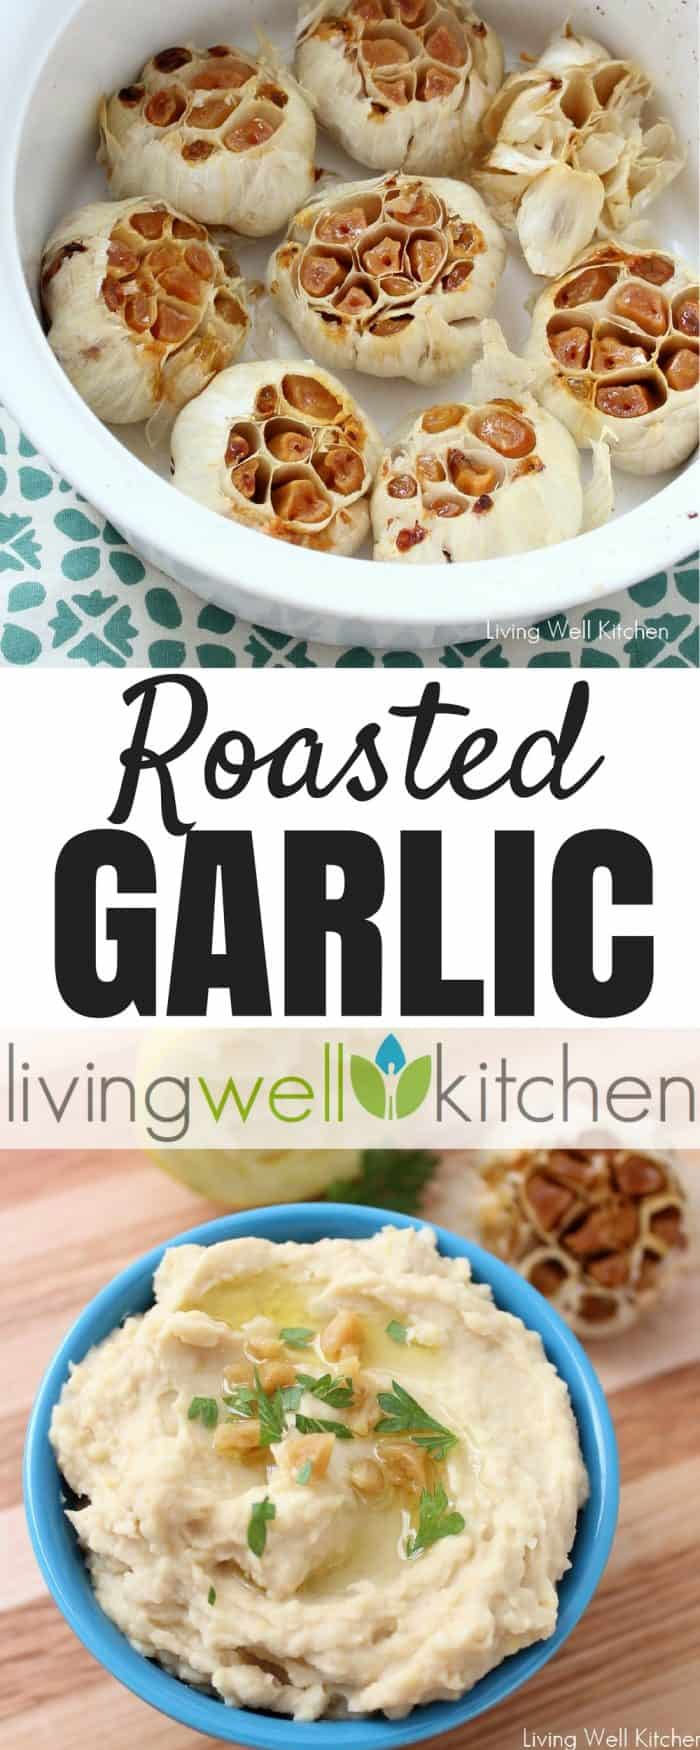 Roasted Garlic is so easy to make and gives tons of flavor to any dish. from Living Well Kitchen @memeinge || https://blog.memeinge.com/roasted-garlic/